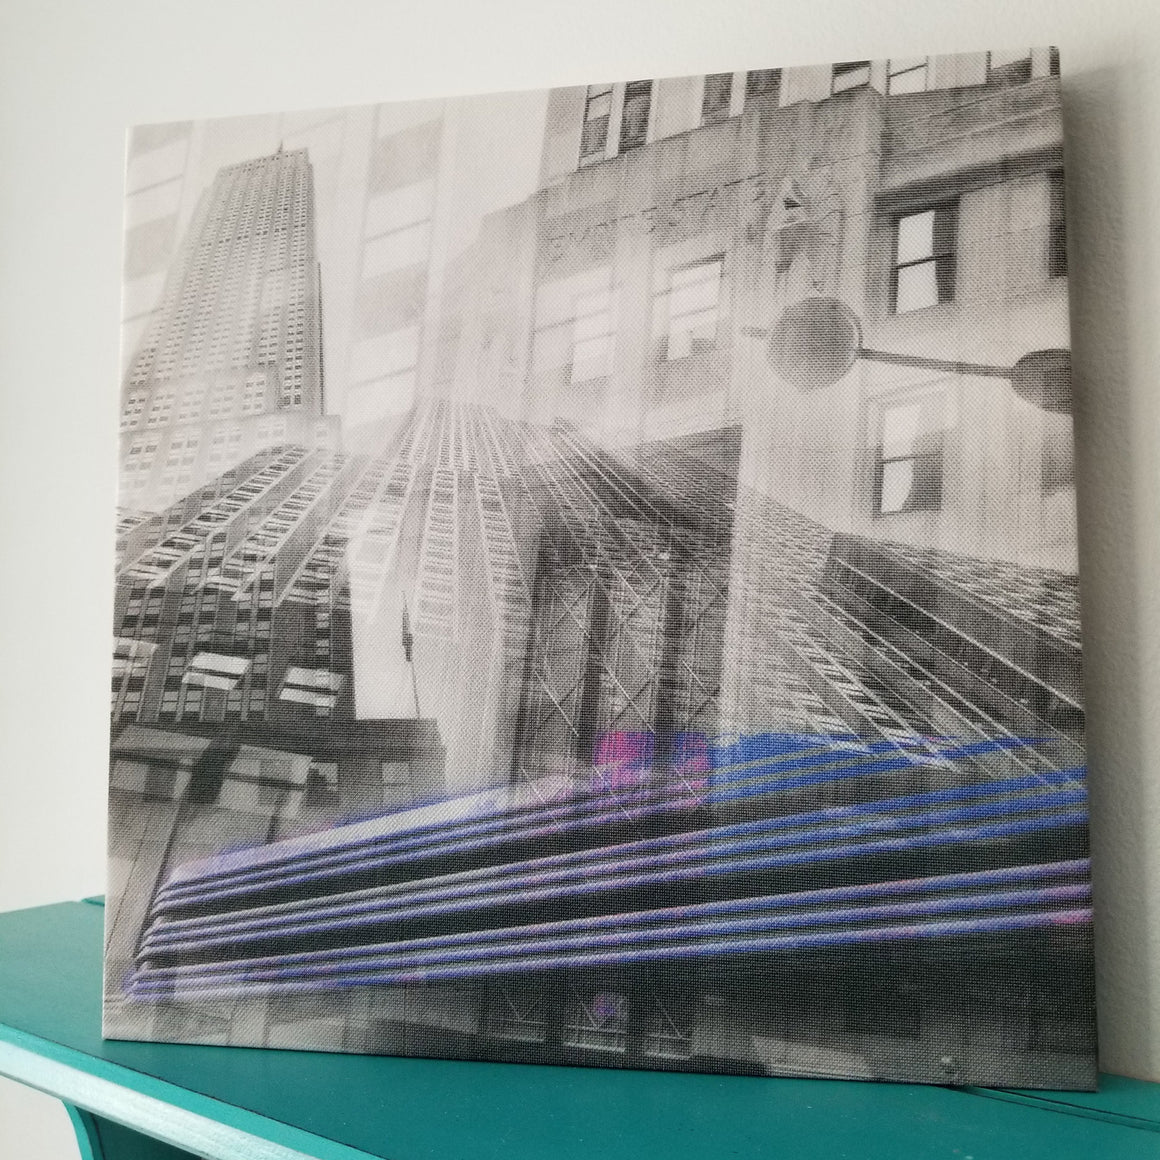 "New York 13"" Canvas - Empire State Building - Photo Collage Wall Art"